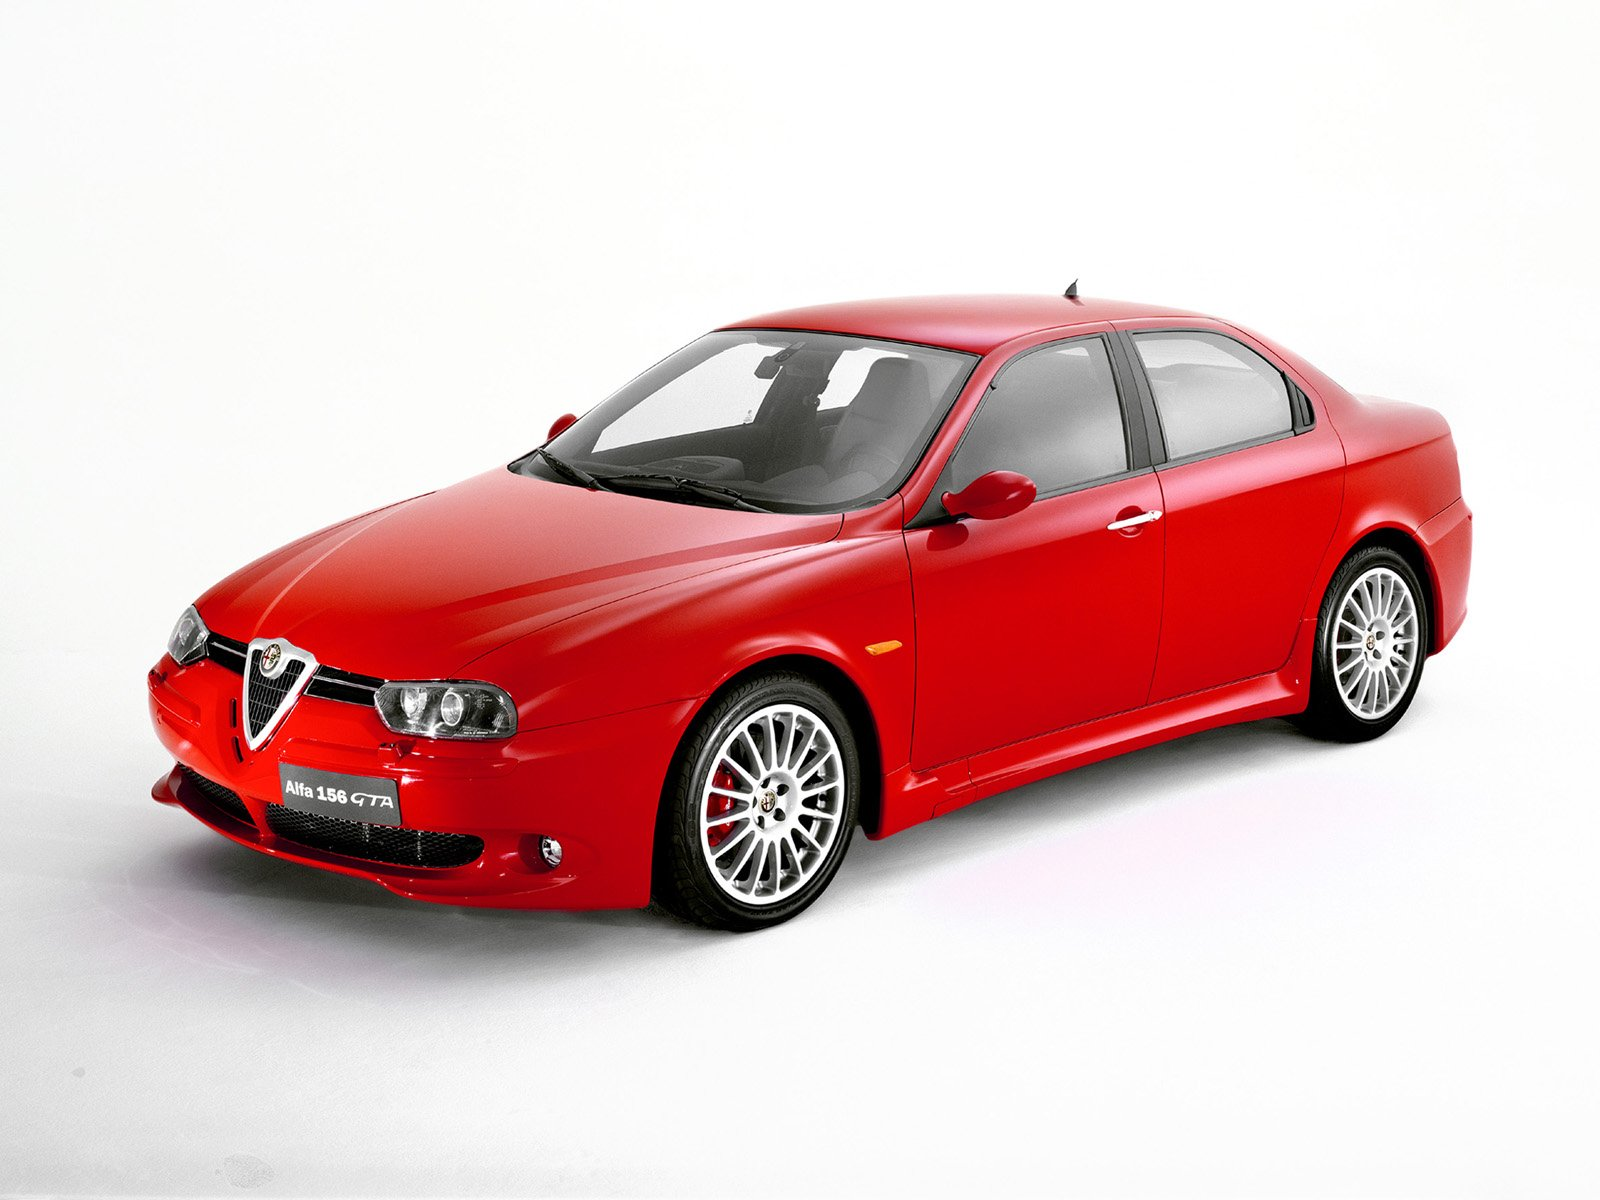 alfa romeo 156 gta photos photo gallery page 2. Black Bedroom Furniture Sets. Home Design Ideas